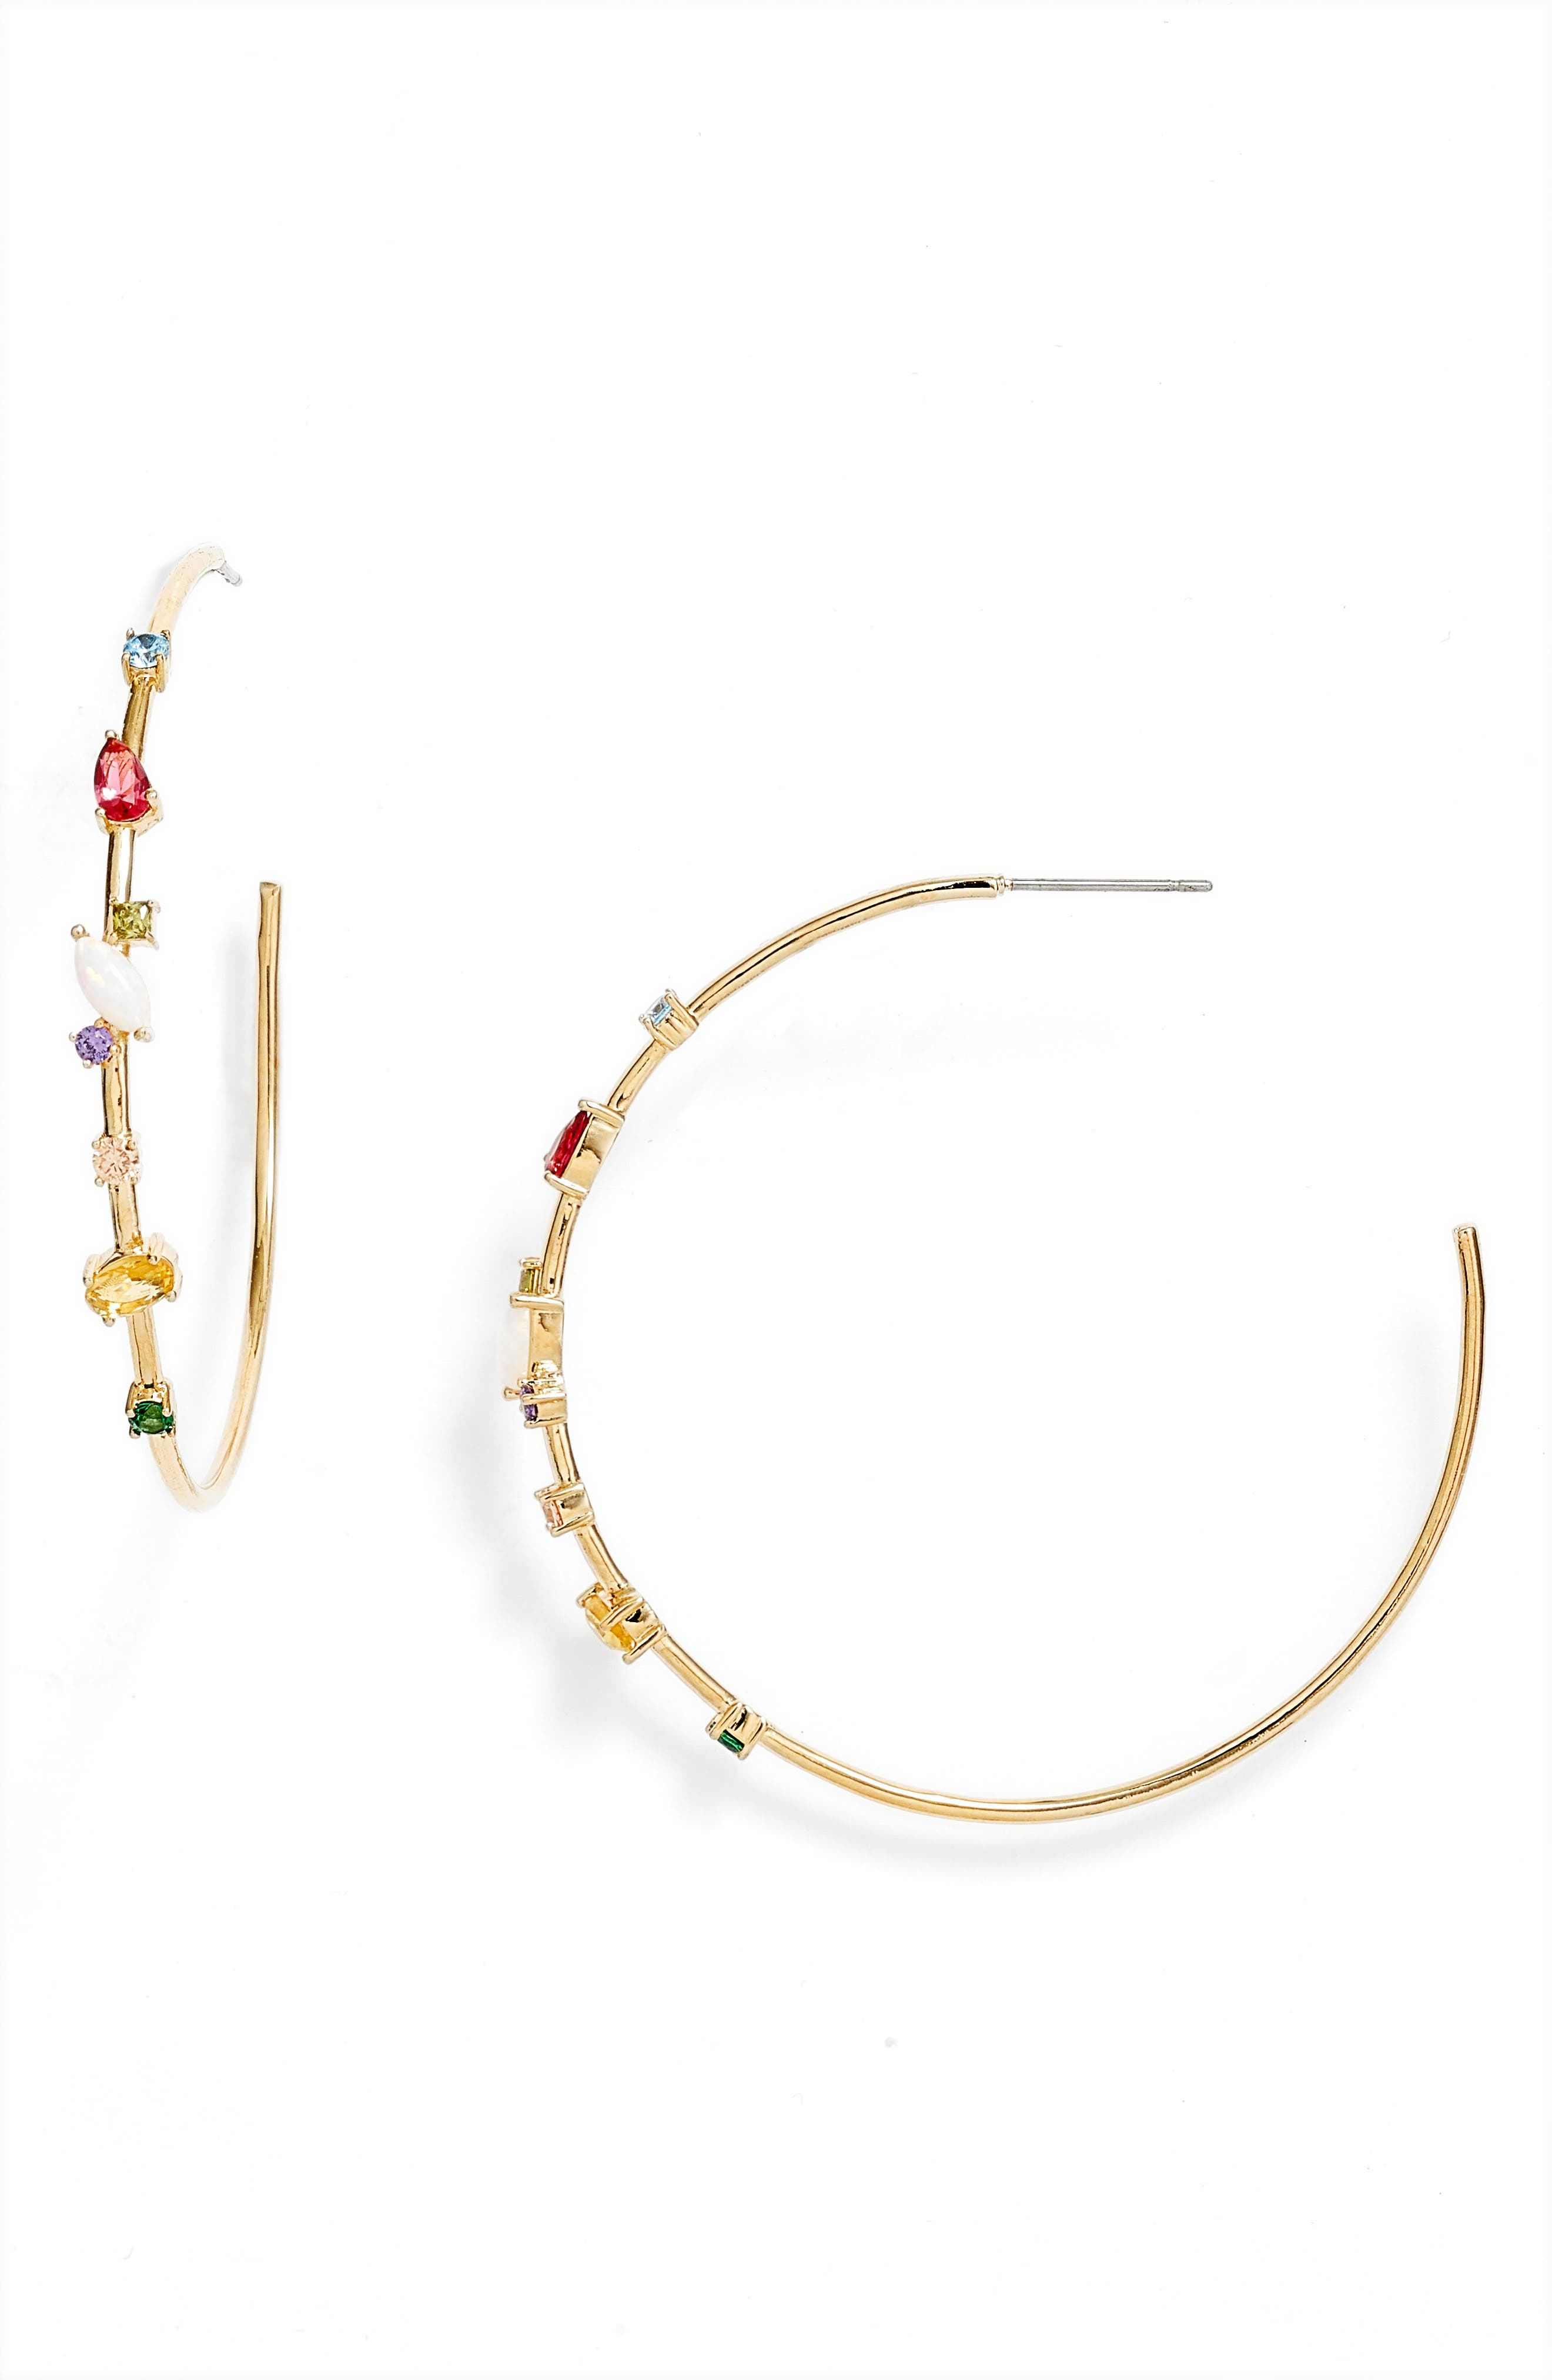 Tiny stones dancing along the edge add sparkling glamour to these gleaming hoop earrings destined to make a statement. Style Name: Nordstrom Crystal Detail Hoop Earrings. Style Number: 6016822. Available in stores.